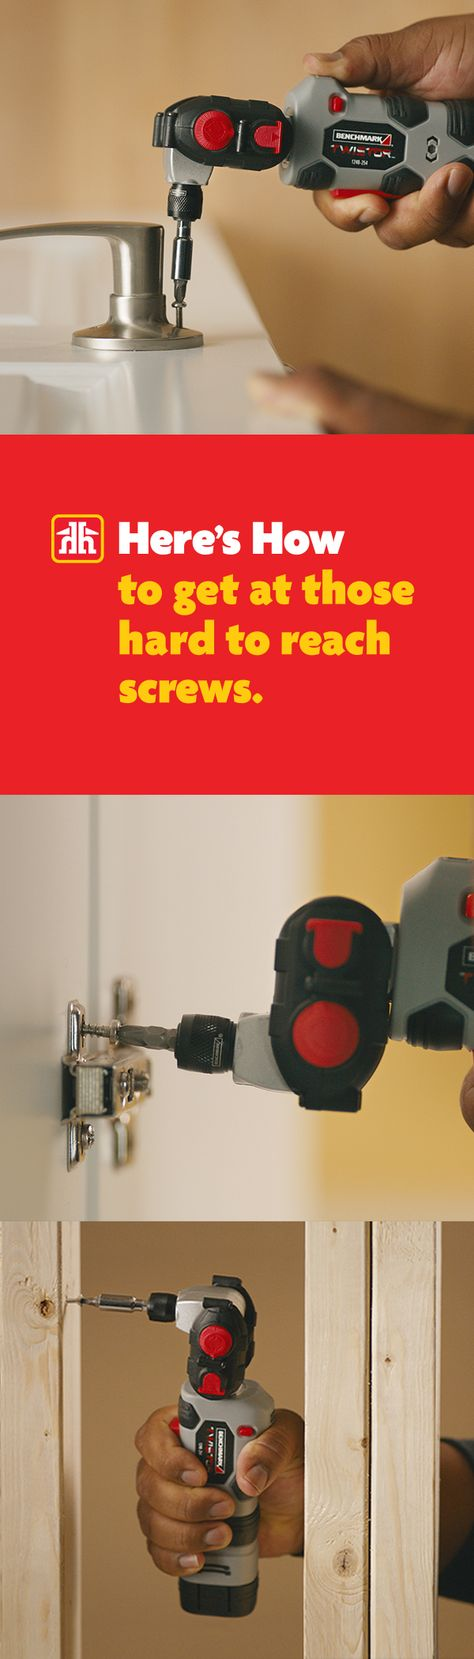 Finally, you can get at those hard to reach screws. #HeresHow Only $49.97 and only at Home Hardware.